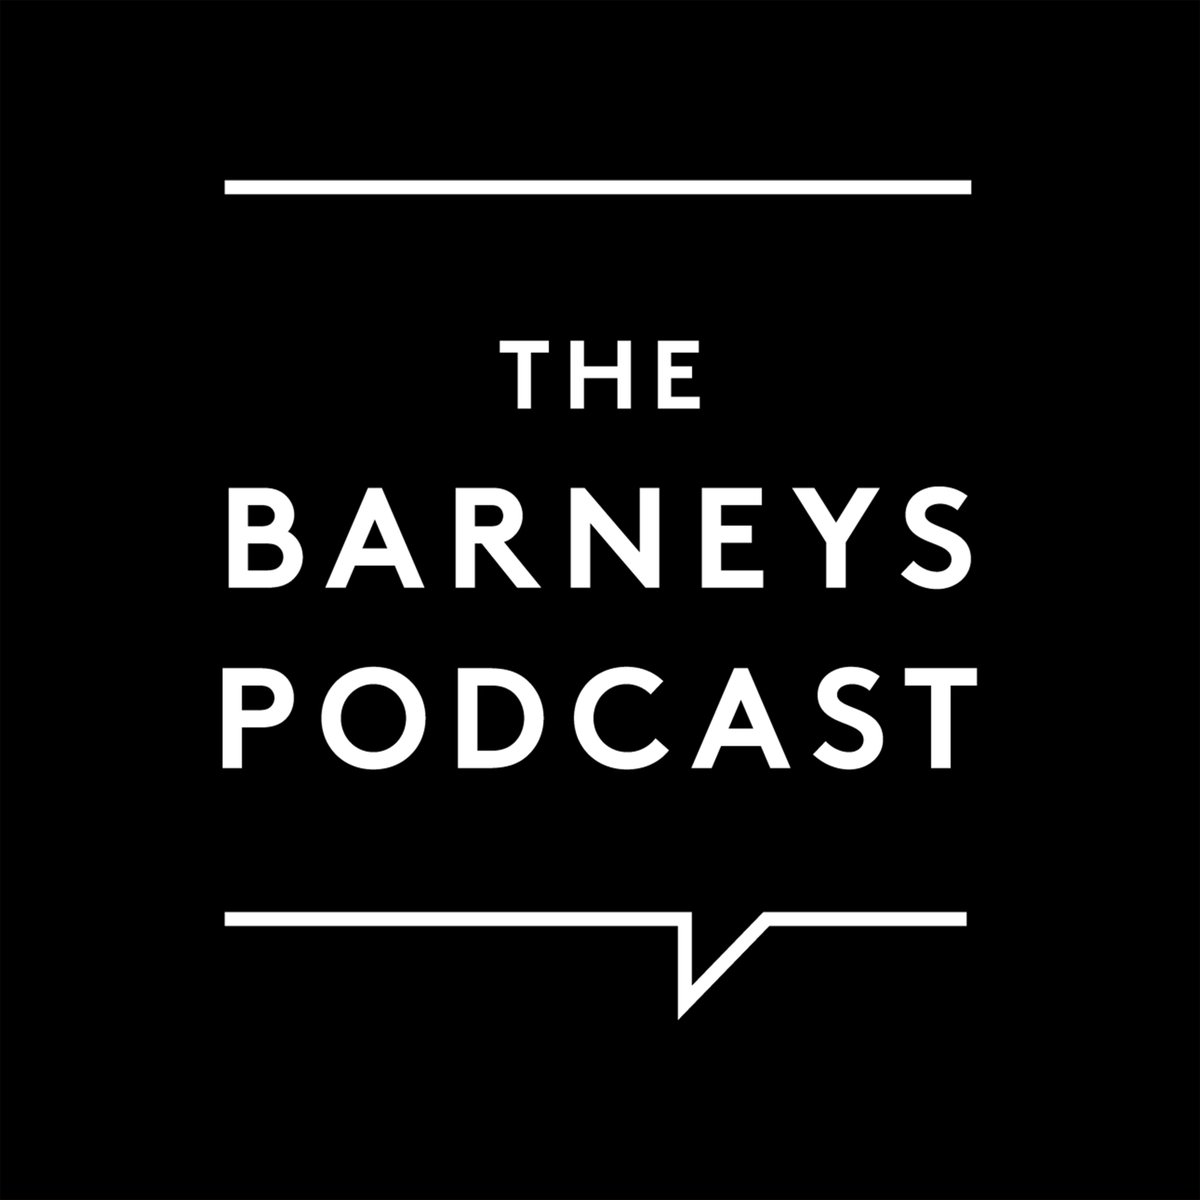 Listen to my podcast with @BarneysNY, on #VBSince08 and more. x VB https://t.co/CJirDi3VYc https://t.co/REACbamBqN